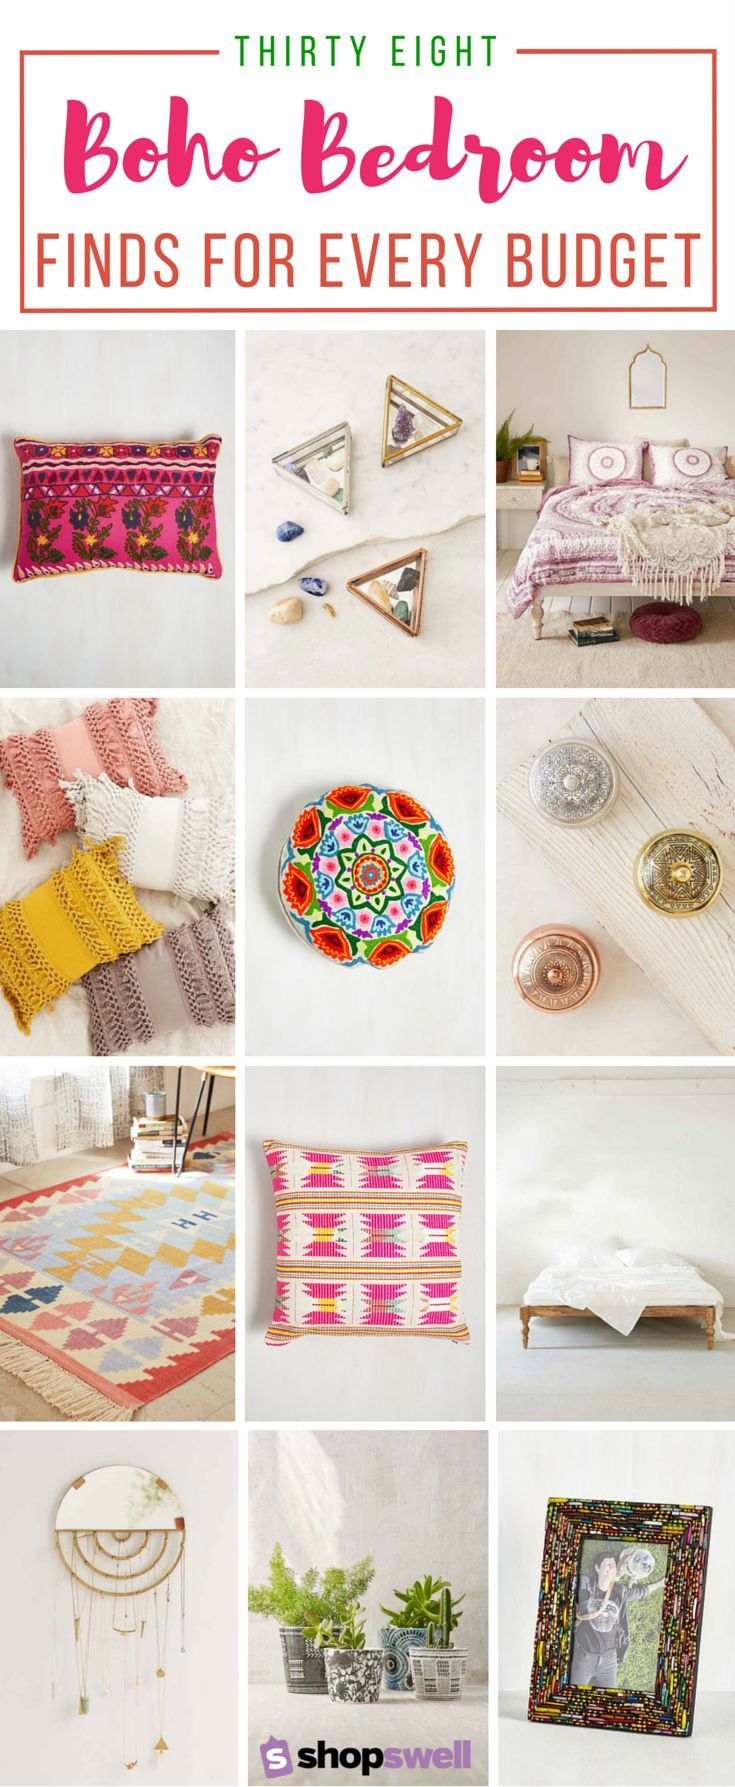 Want to bring the boho to your bedroom but don't have an unlimited budget (who does?!)? Here are 38 trendy, bohemian bedding and decor finds for every budget.